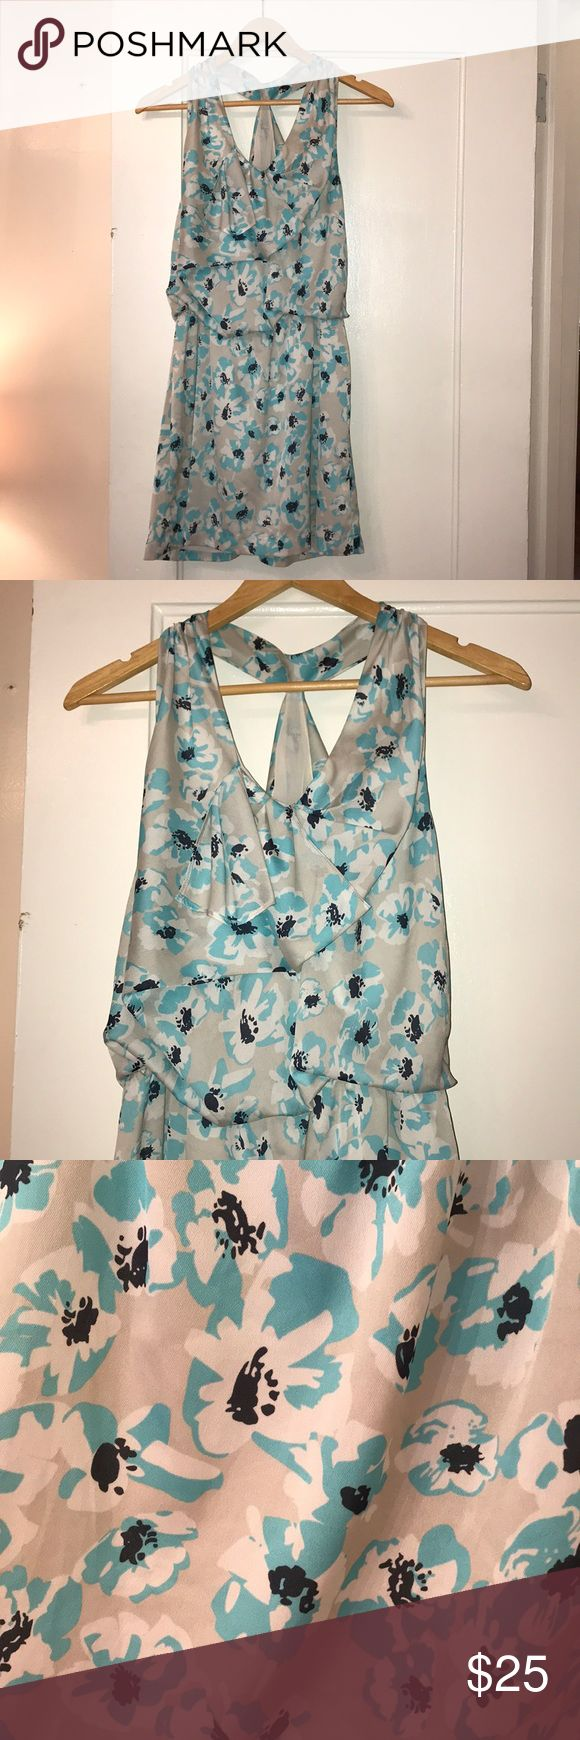 """Summer Dress Subtle floral-patterned dress with T back. Worn once. Great for graduation, weddings, engagement parties or any occasion. Dress up with heels or down with a denim jacket. I'm 5'5"""" and it hits just above the knee. Miss Me Dresses Mini"""